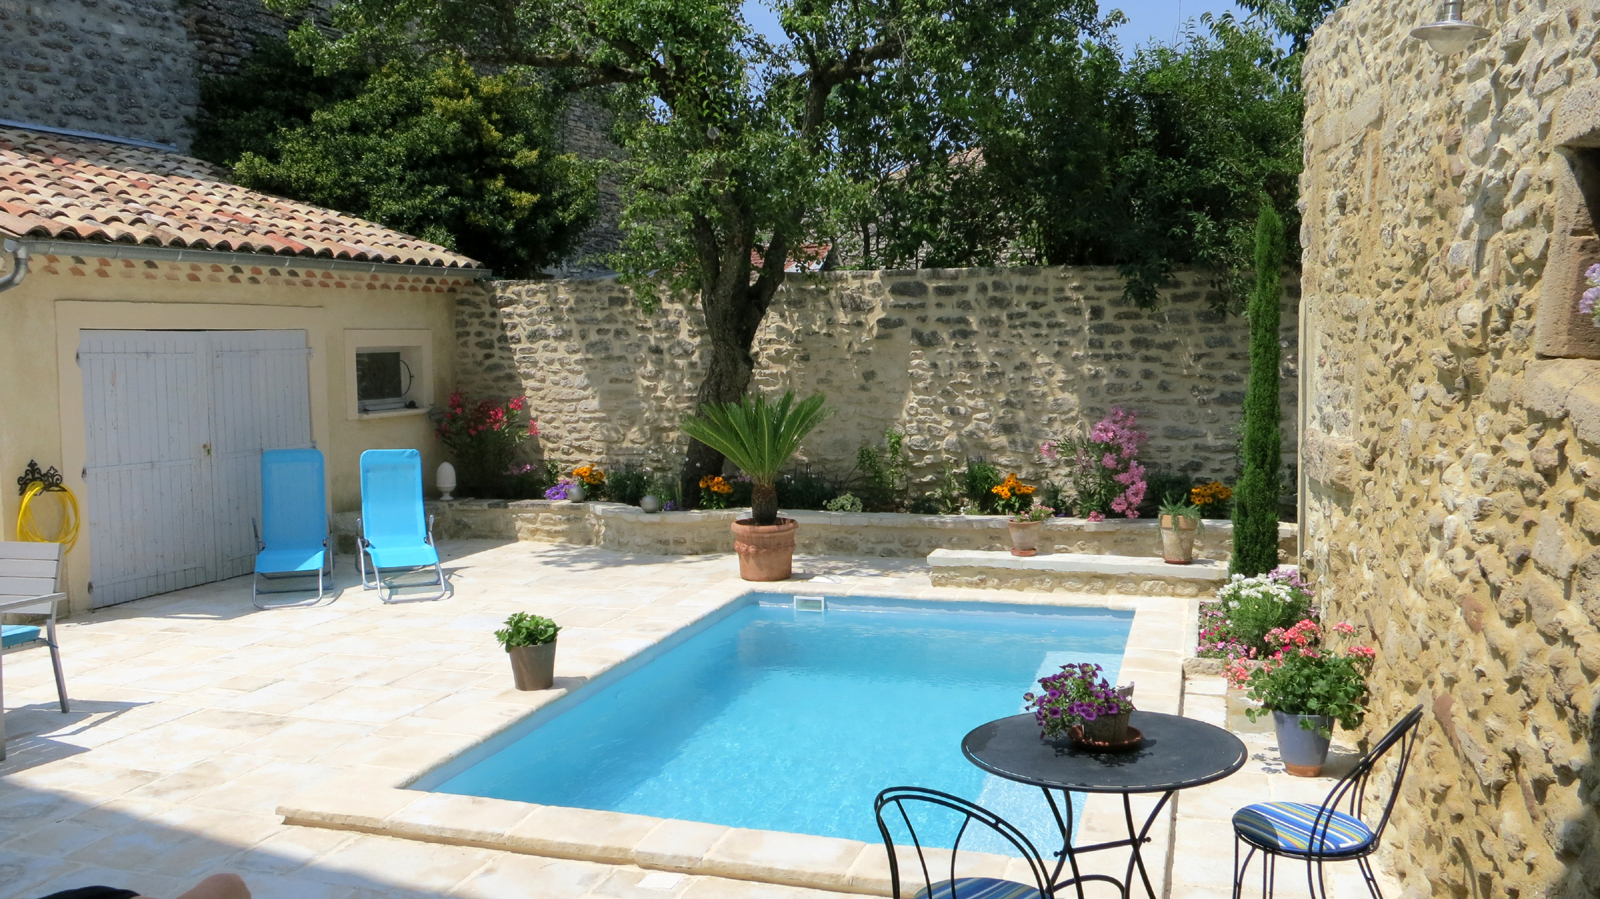 Ventes jardinpiscine r novation de charme compromis signe for Renovation jardin